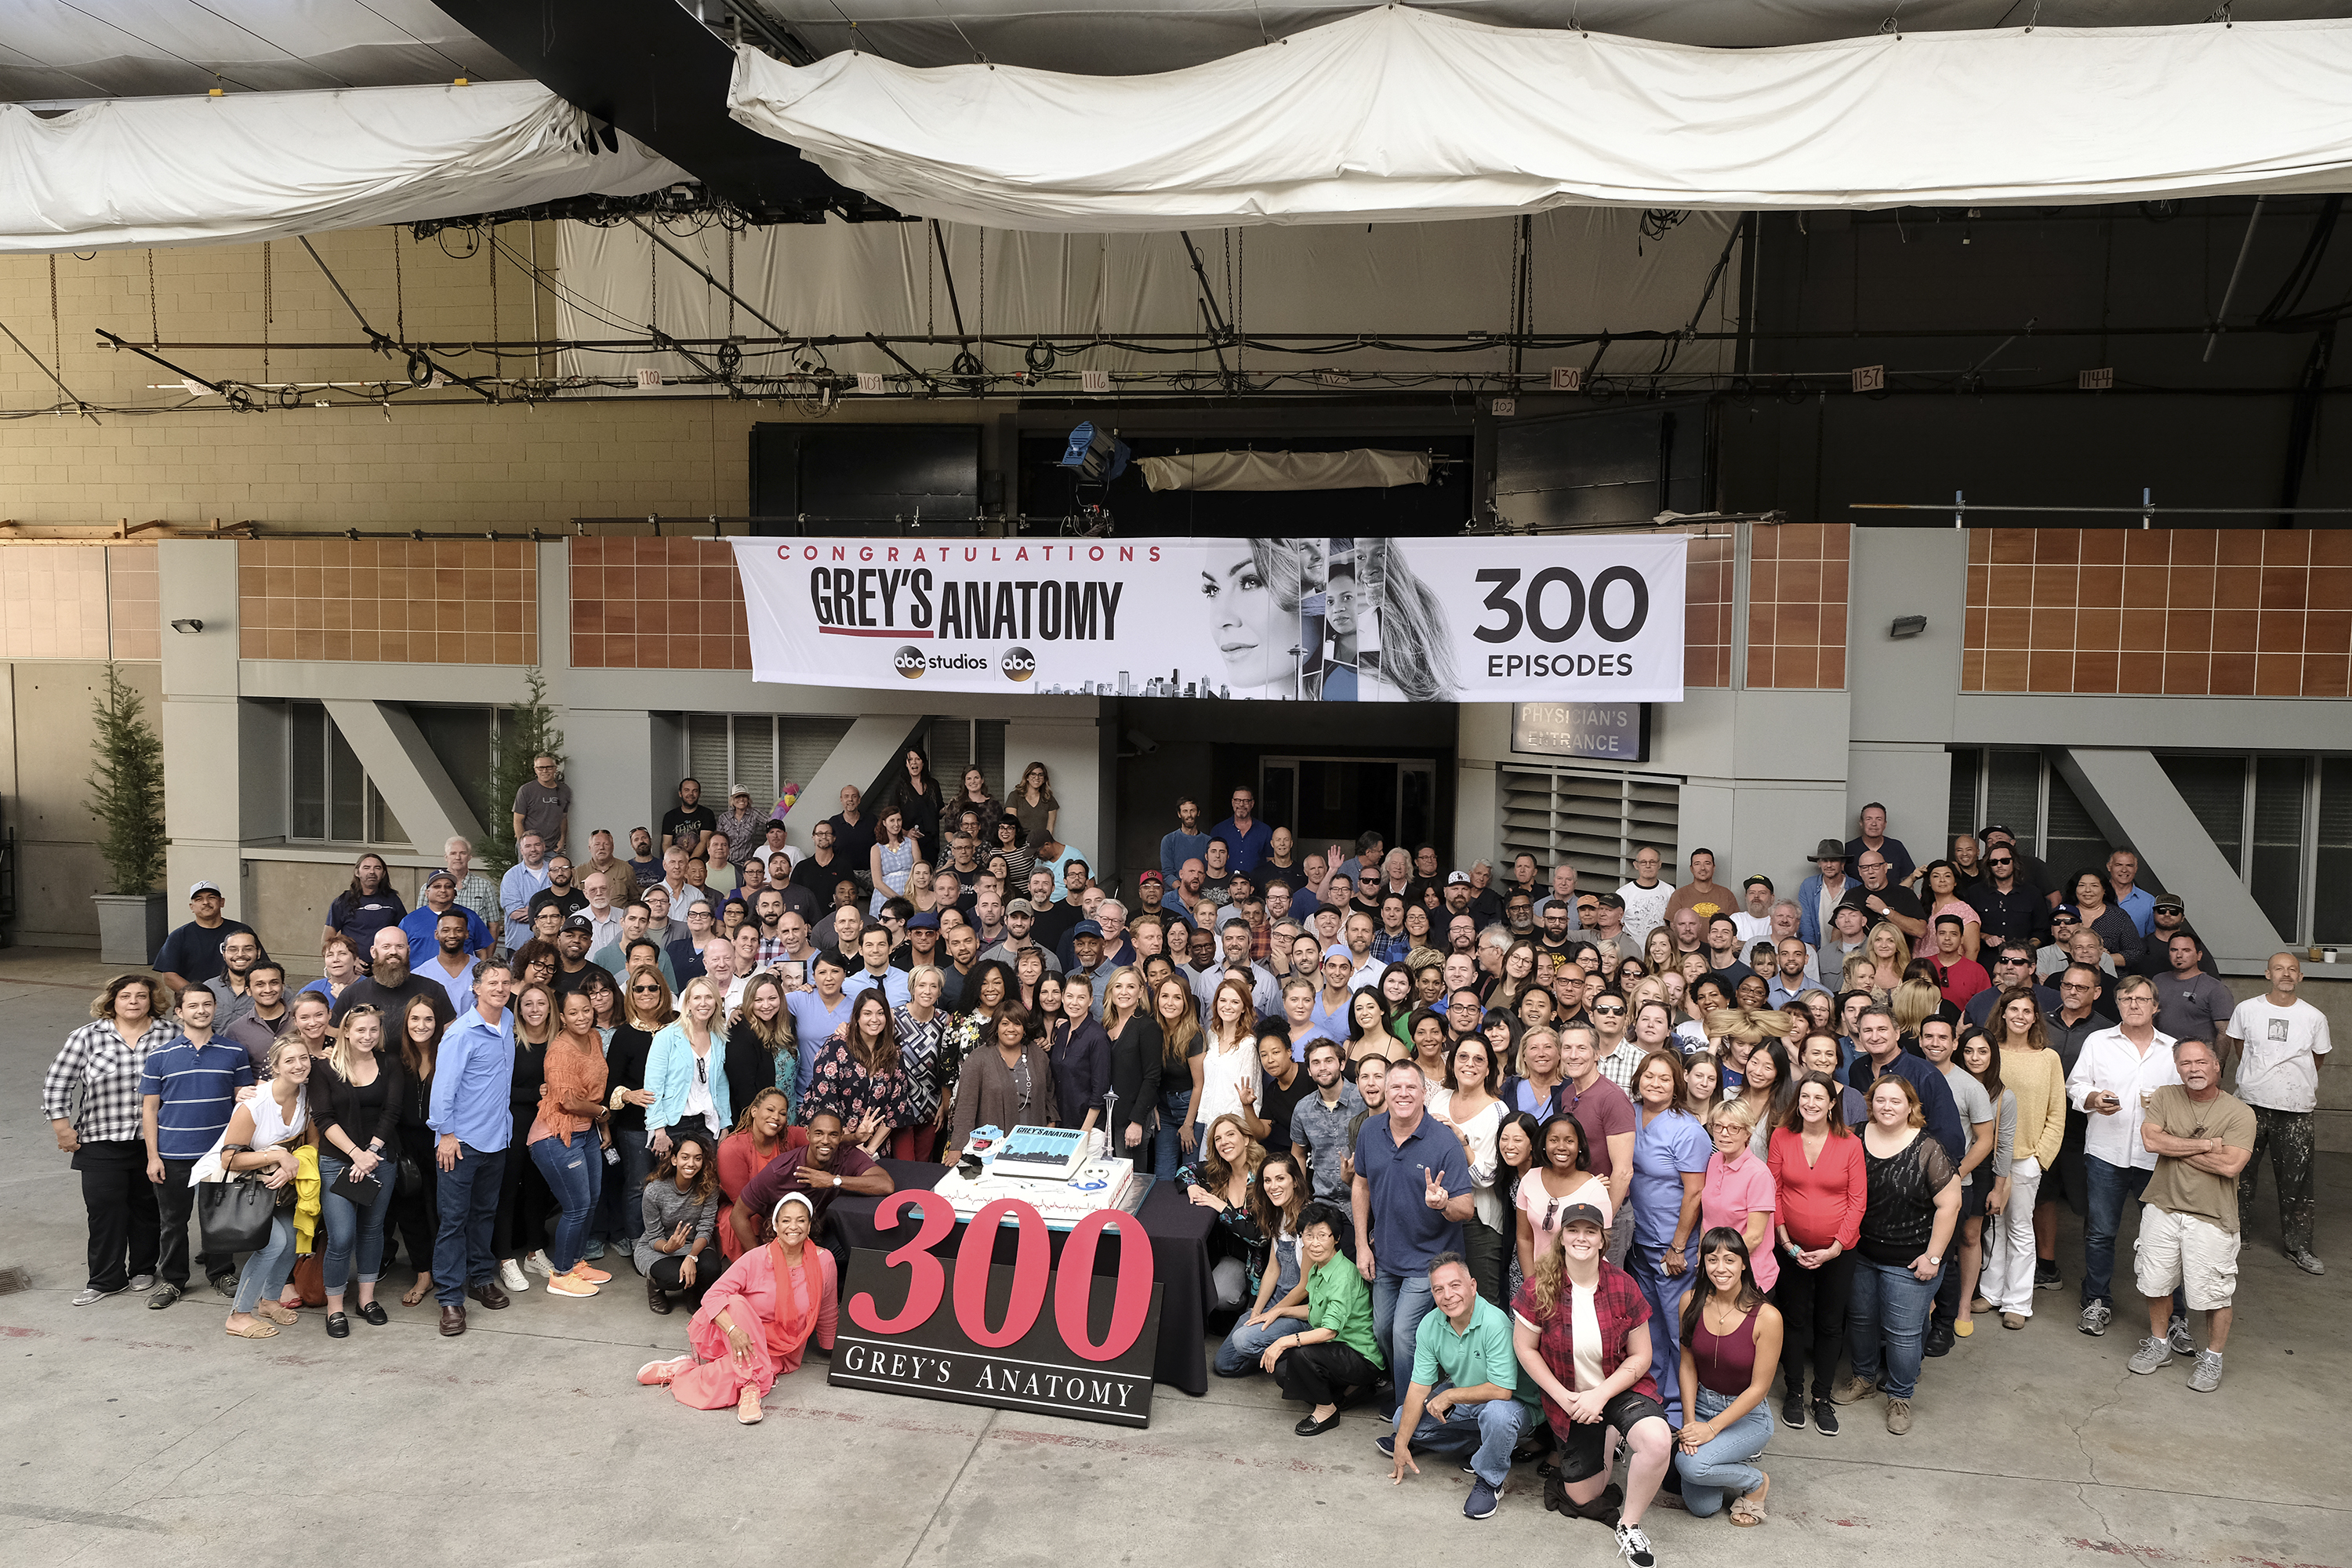 Grey\'s Anatomy Celebrates Landmark 300th Episode - The Walt Disney ...